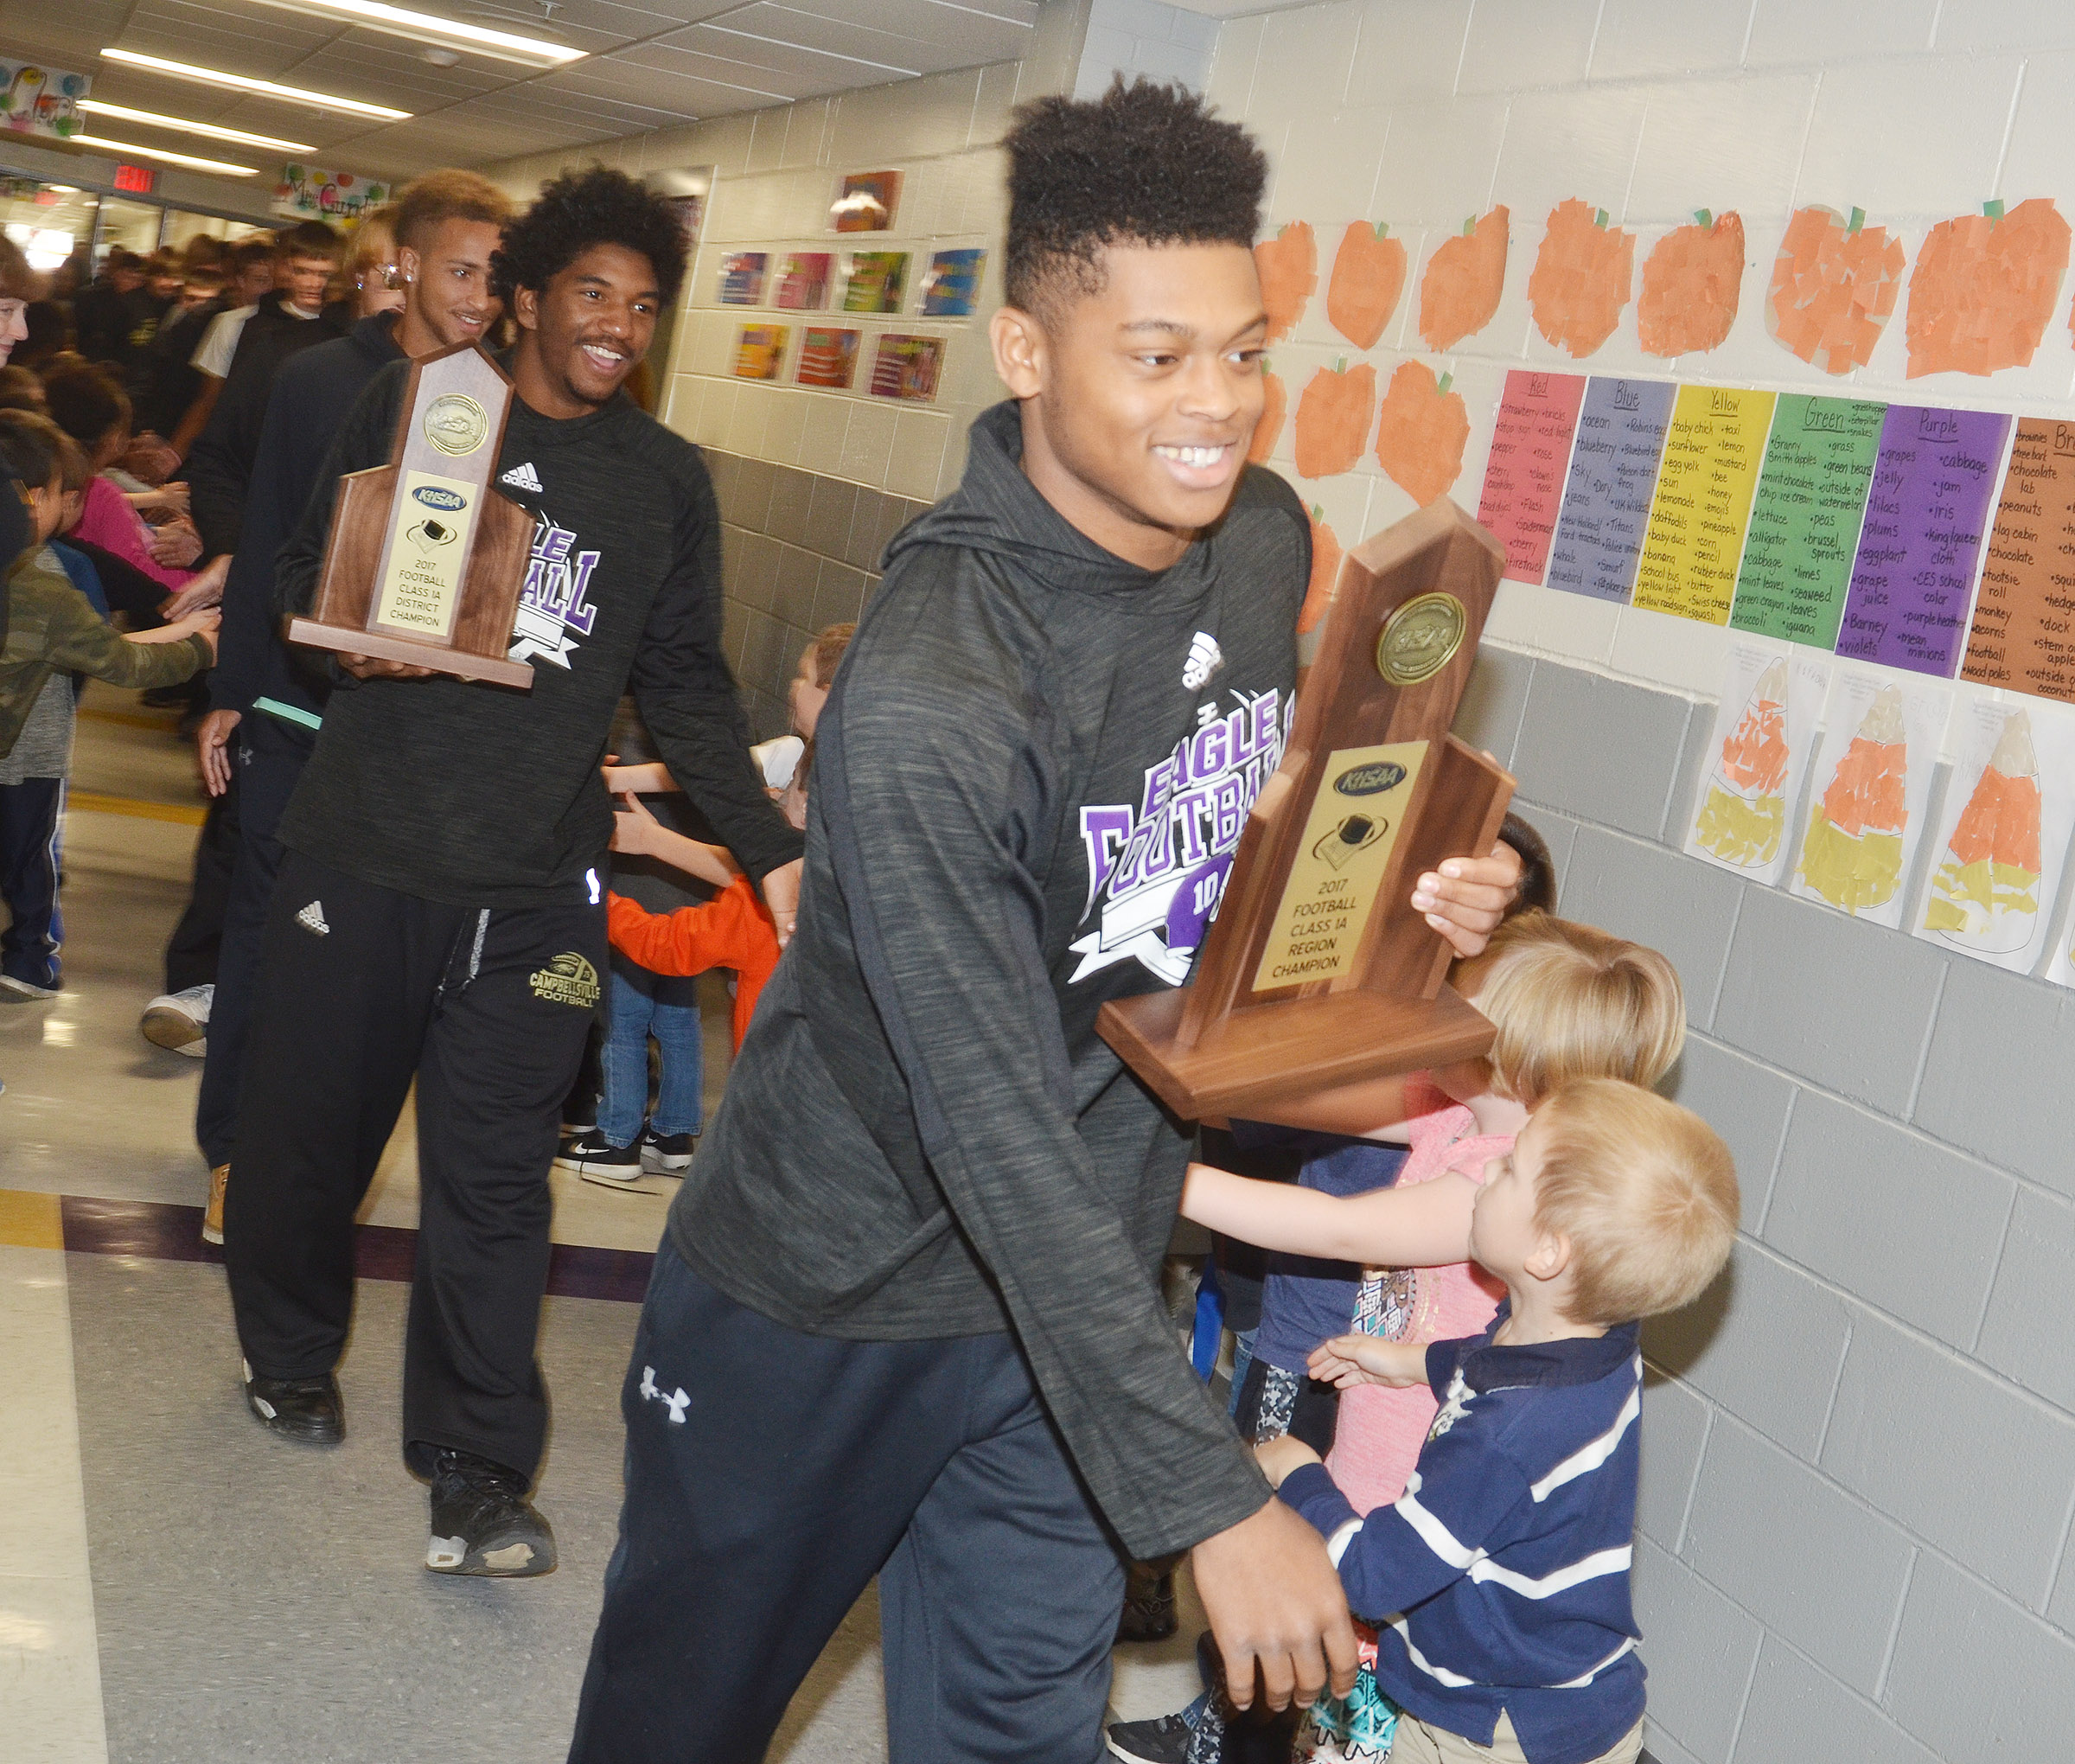 CHS senior Devonte Cubit leads his team in the Eagle Walk through CES. At left is senior Tyrion Taylor.